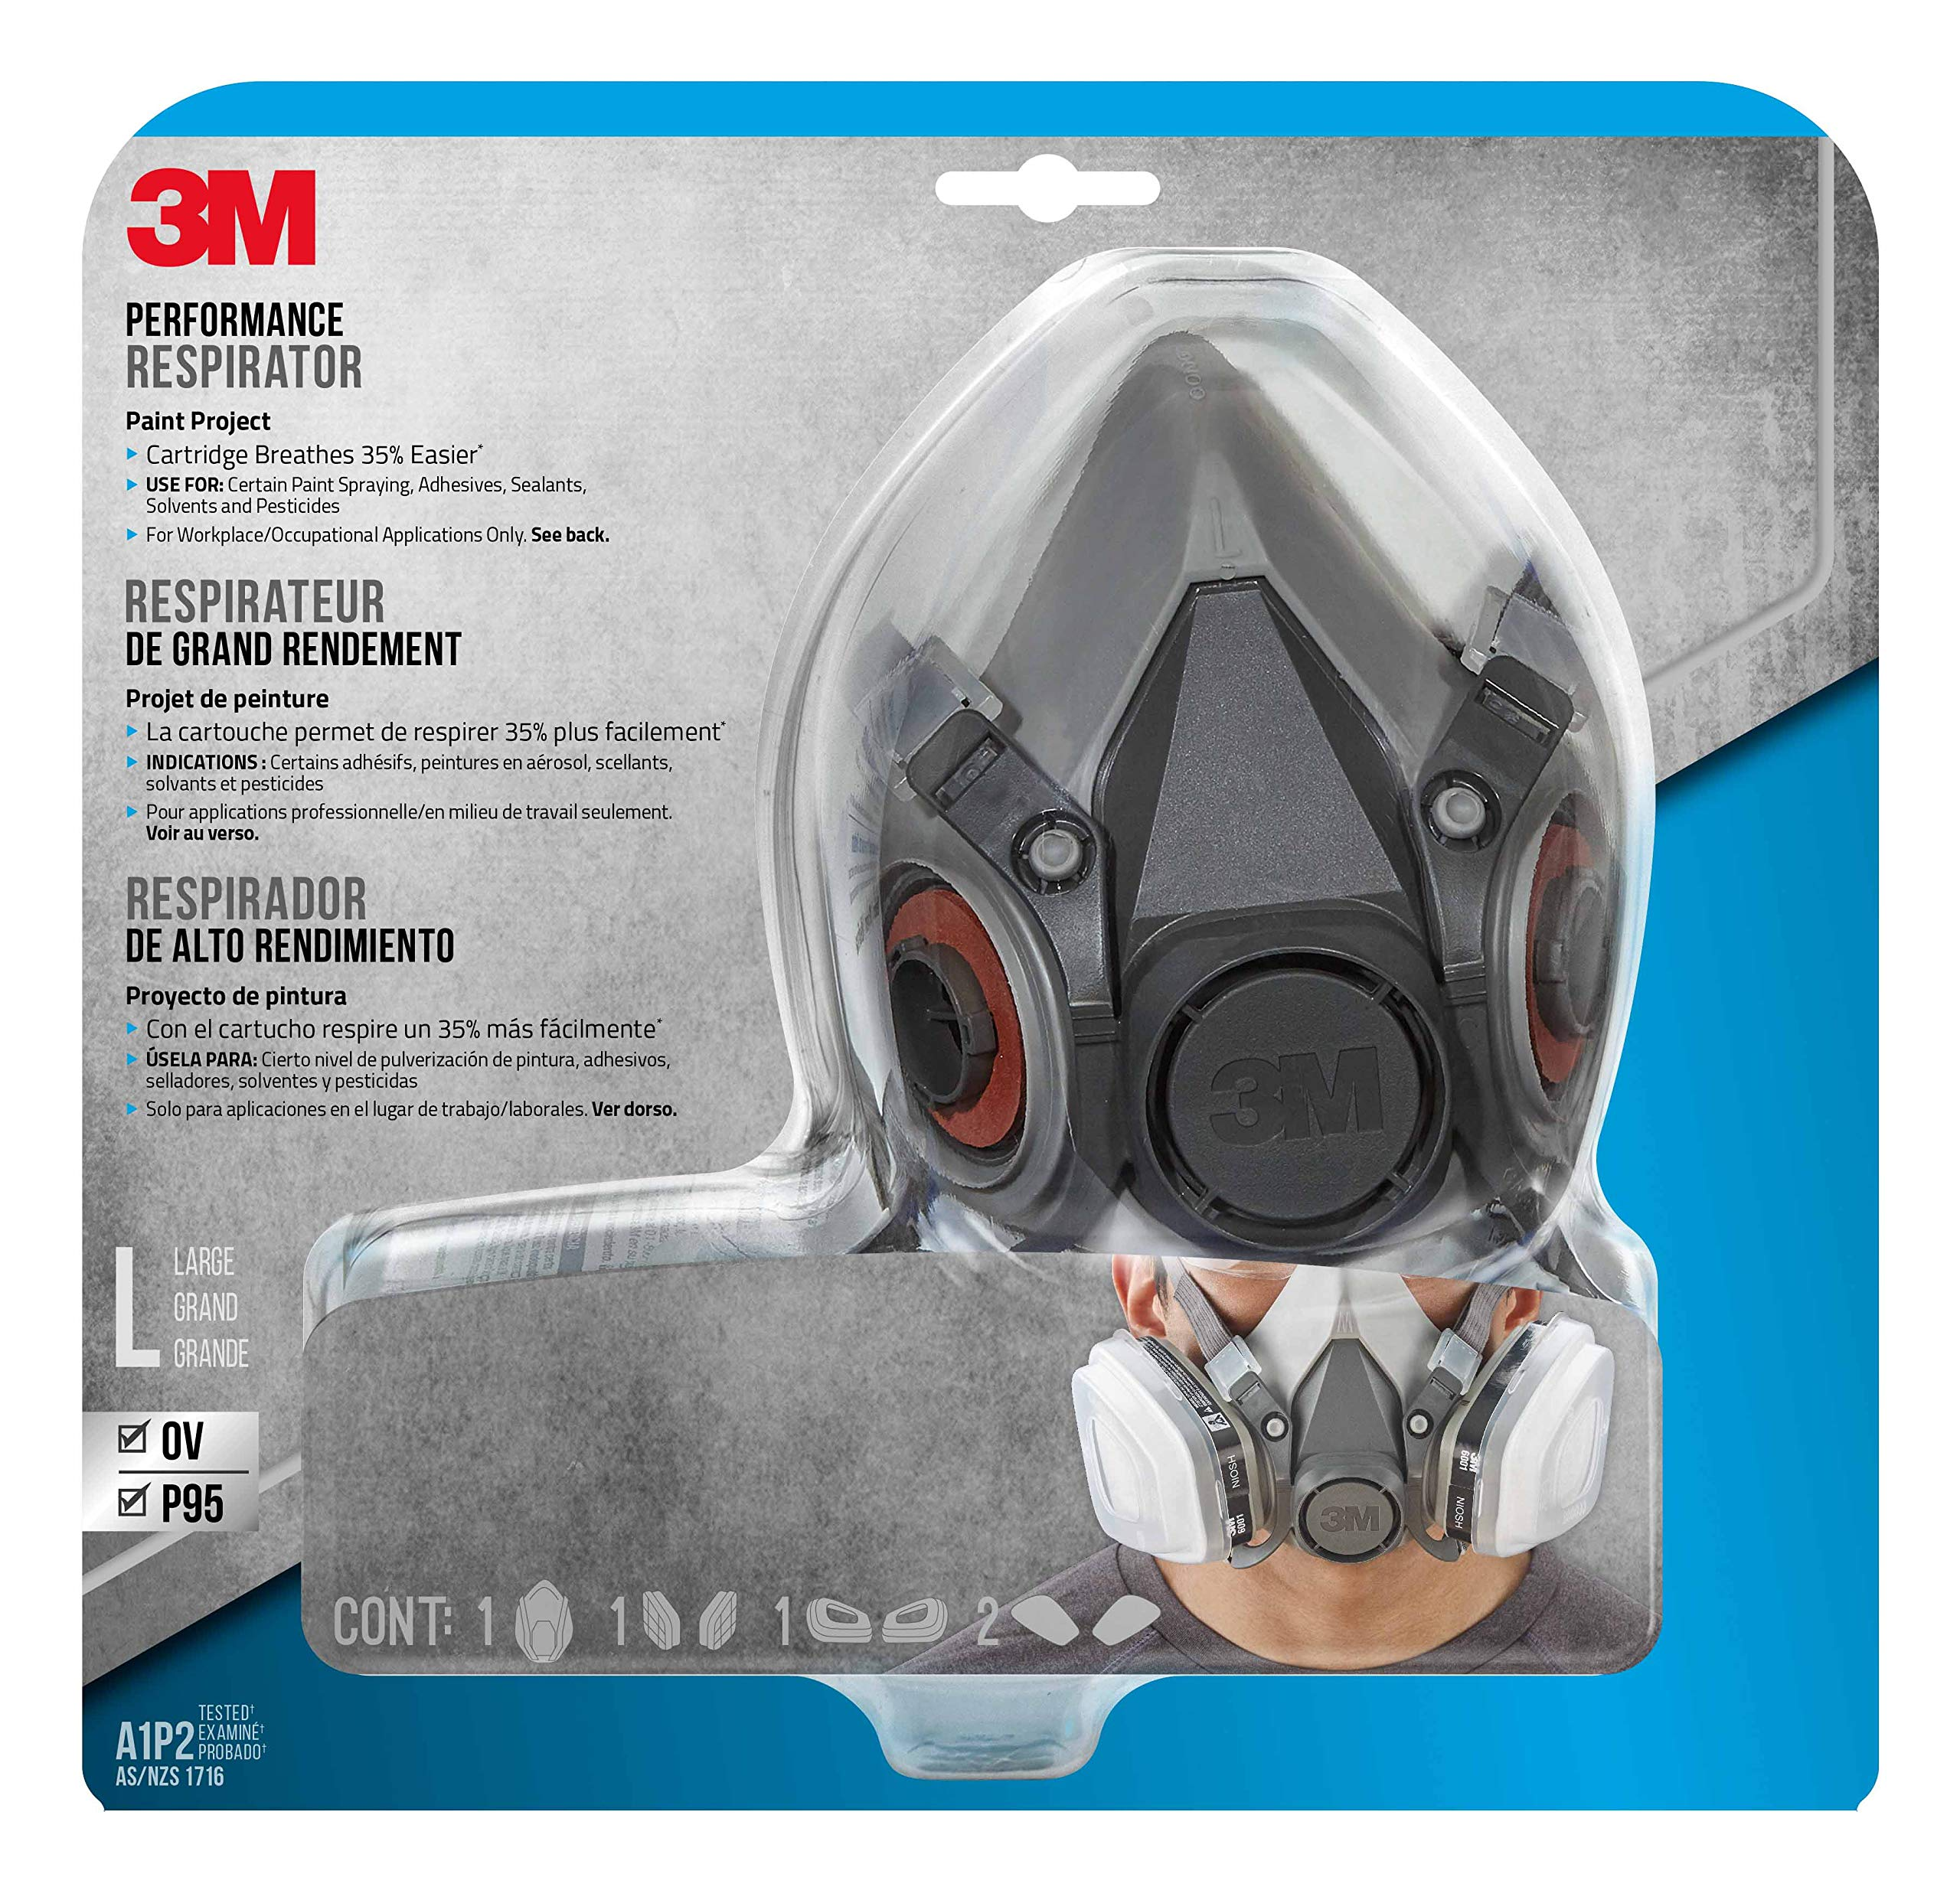 3M Paint Project Respirator, Large by 3M Safety